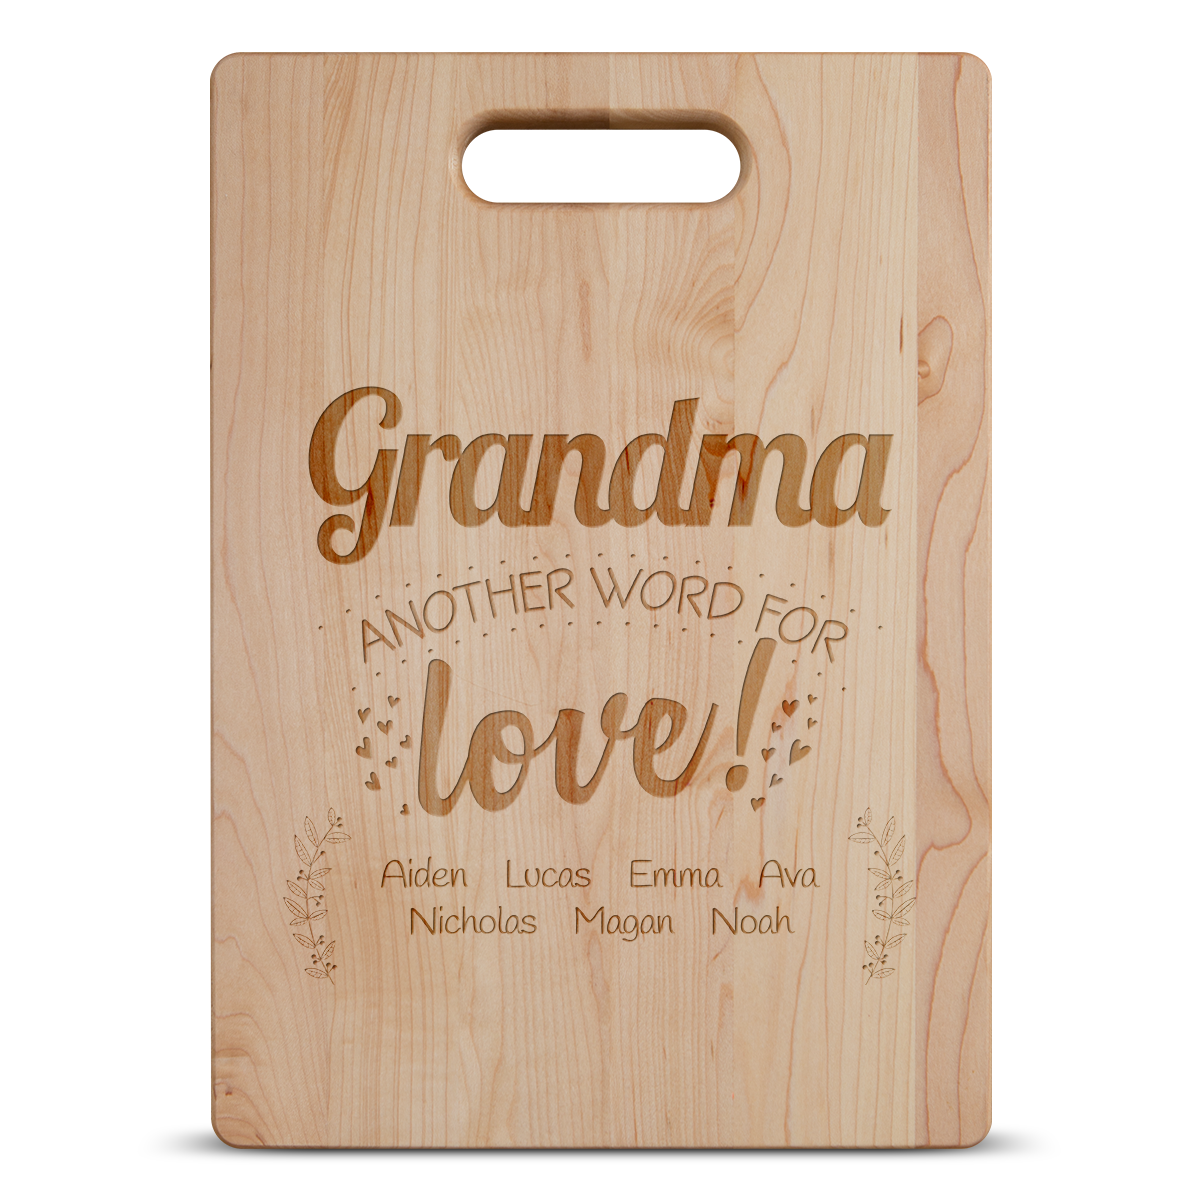 Another Word For Love Personalized Grandma Maple Cutting Board